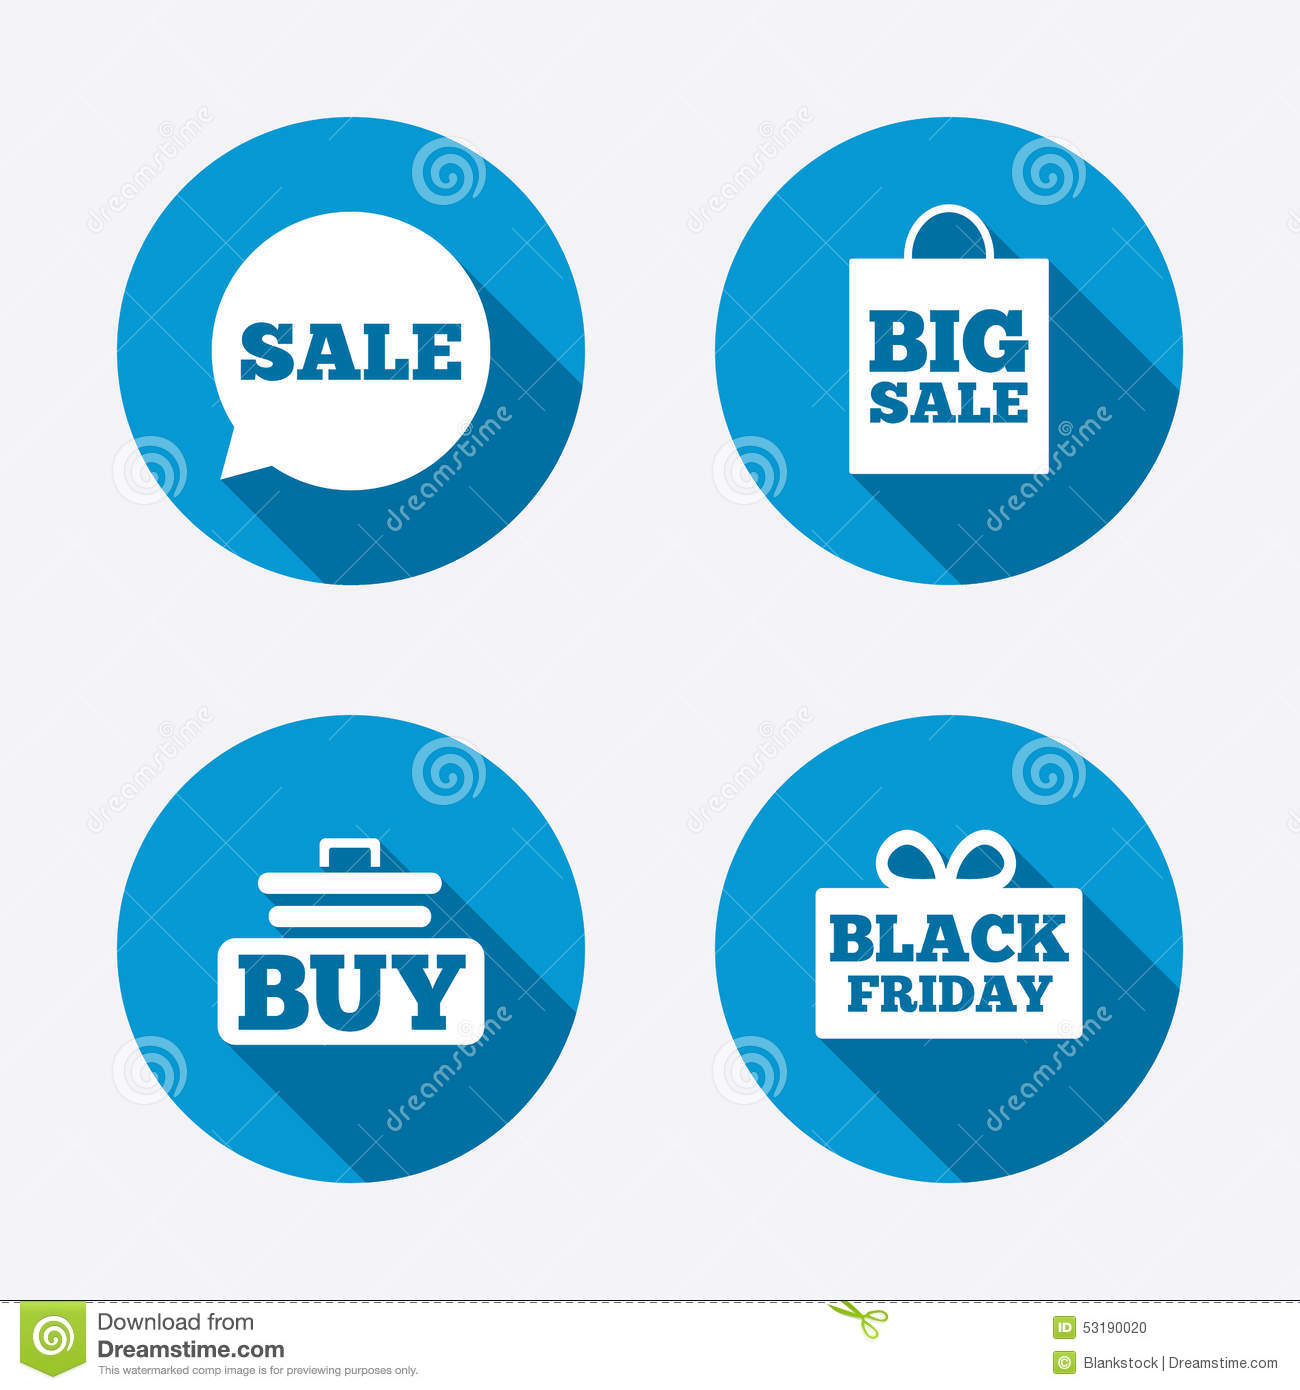 Sale Speech Bubble Icons. Buy Cart Symbol Stock Vector - Image ...